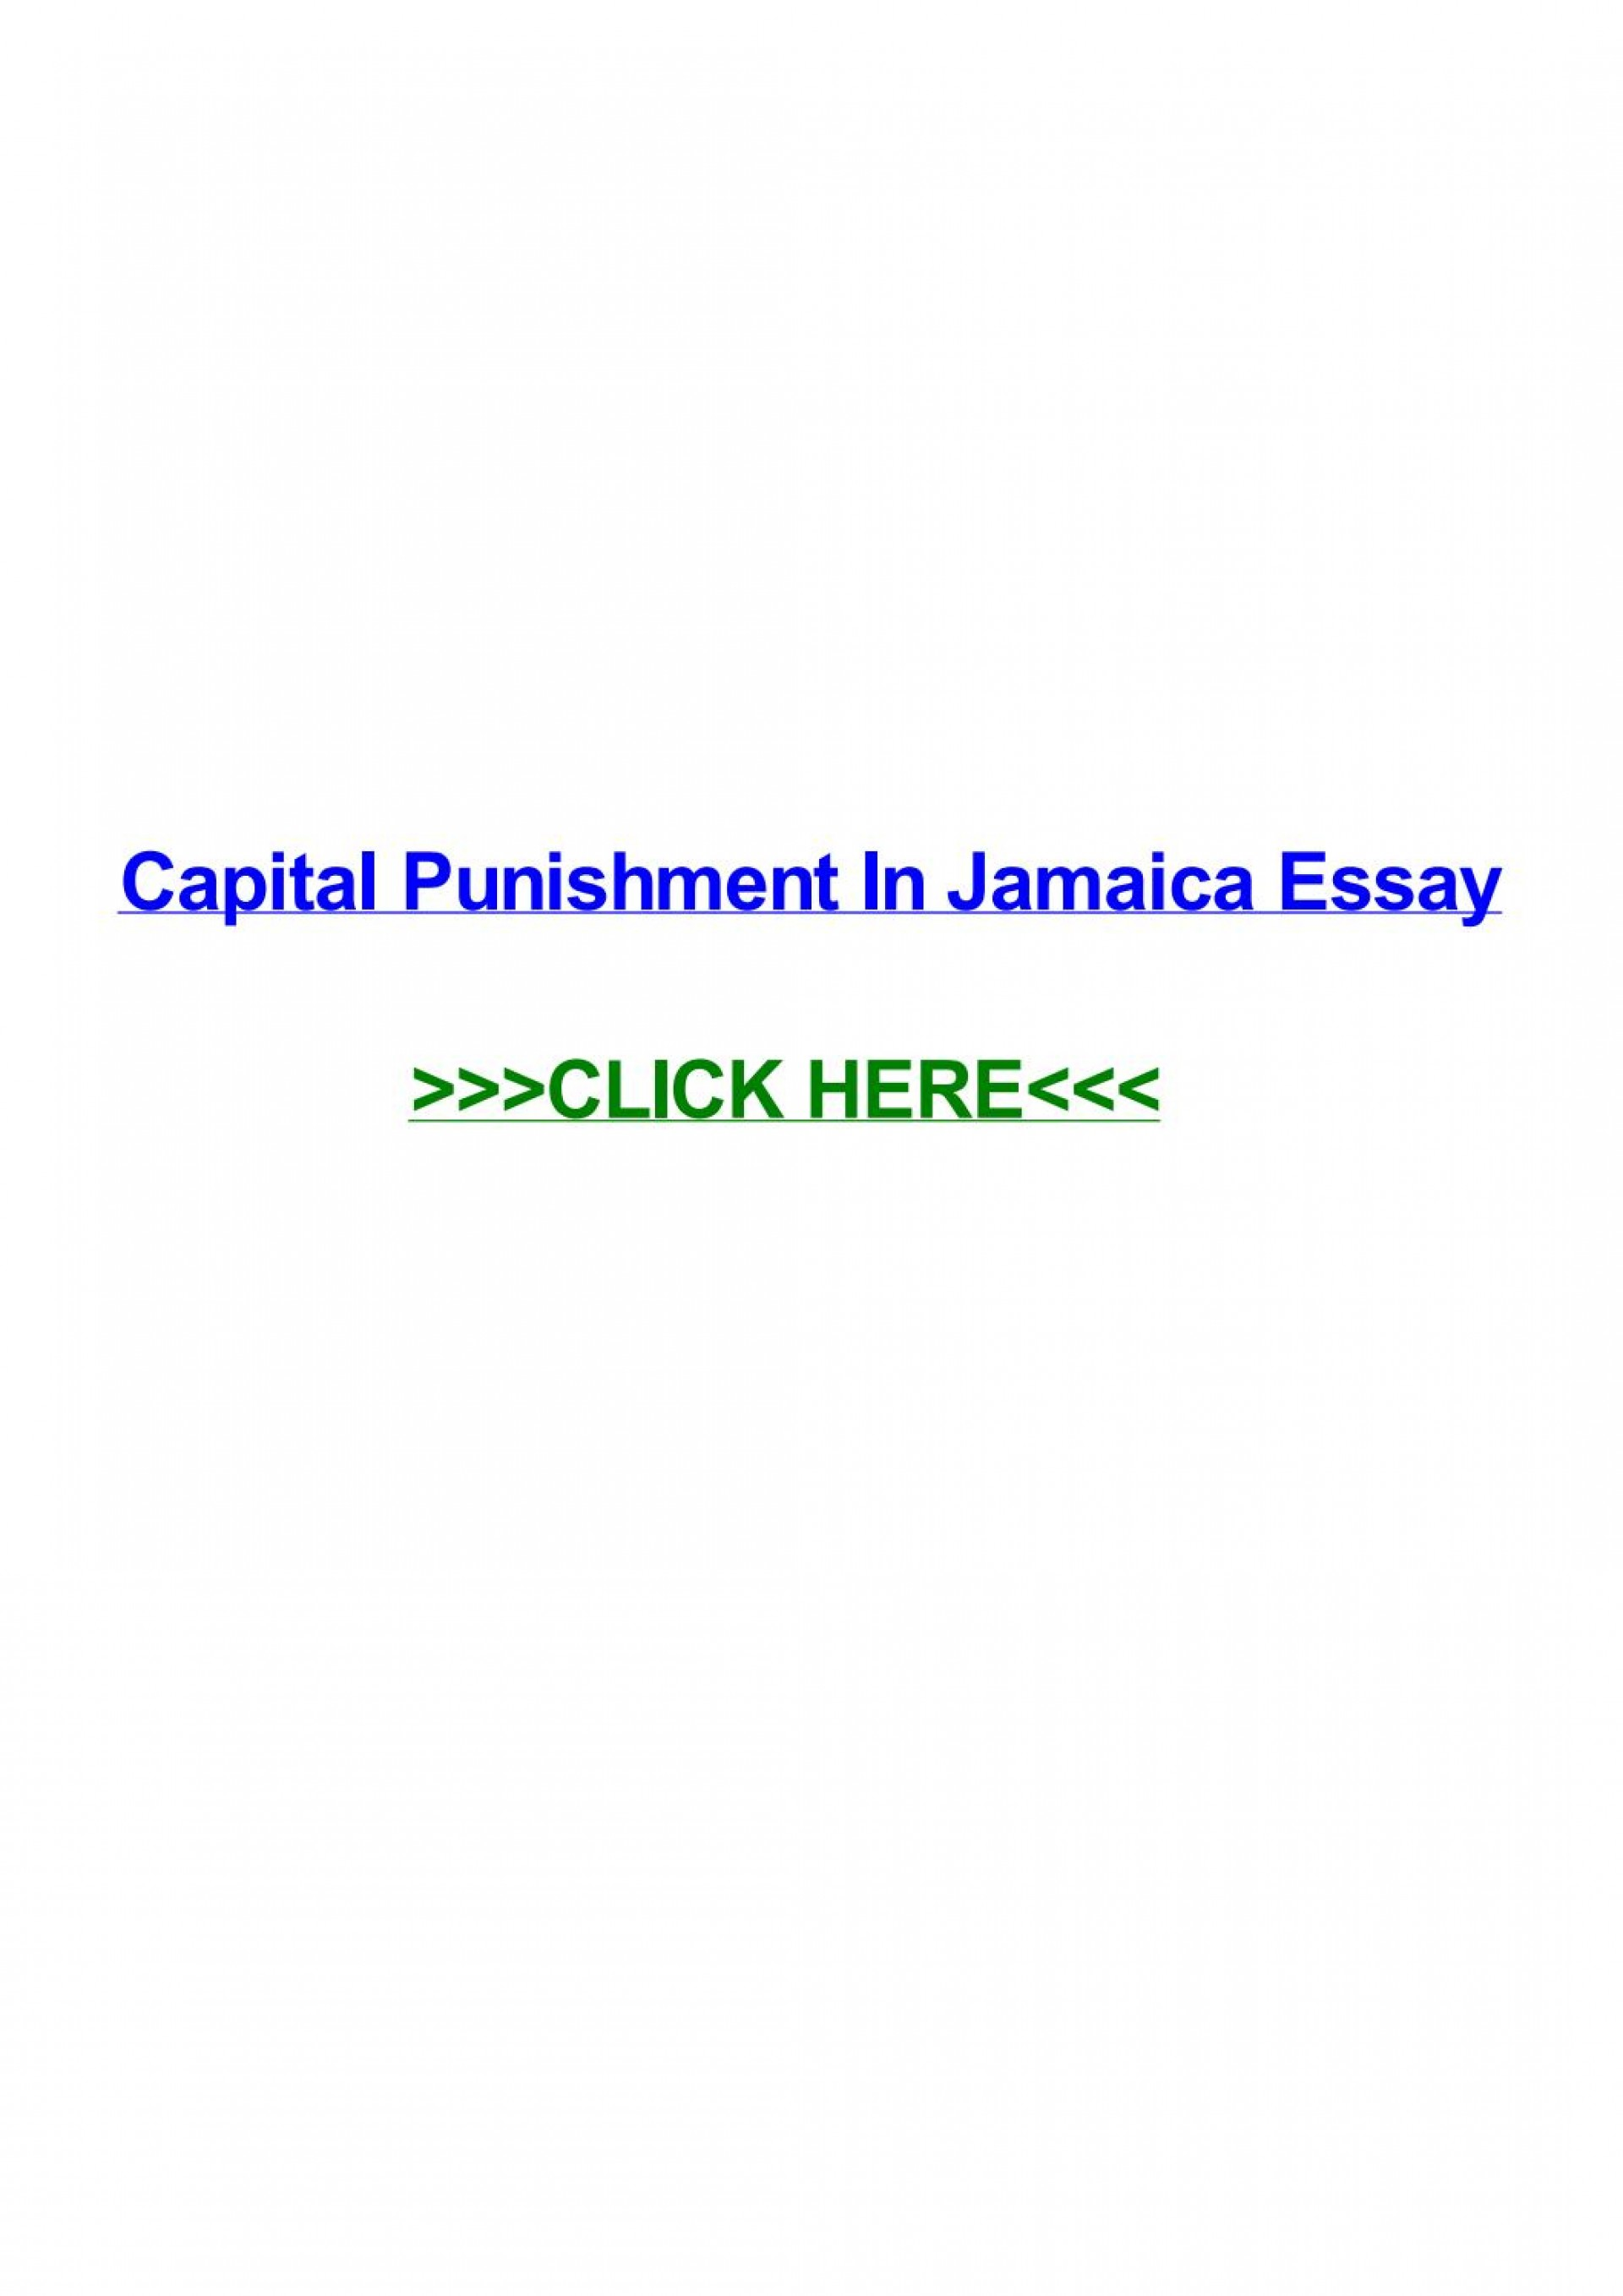 023 Page 1 Essay Capital Breathtaking Promo Codes Capitalism In The Usa 1900 To 1940 New Deal Reviews 1920